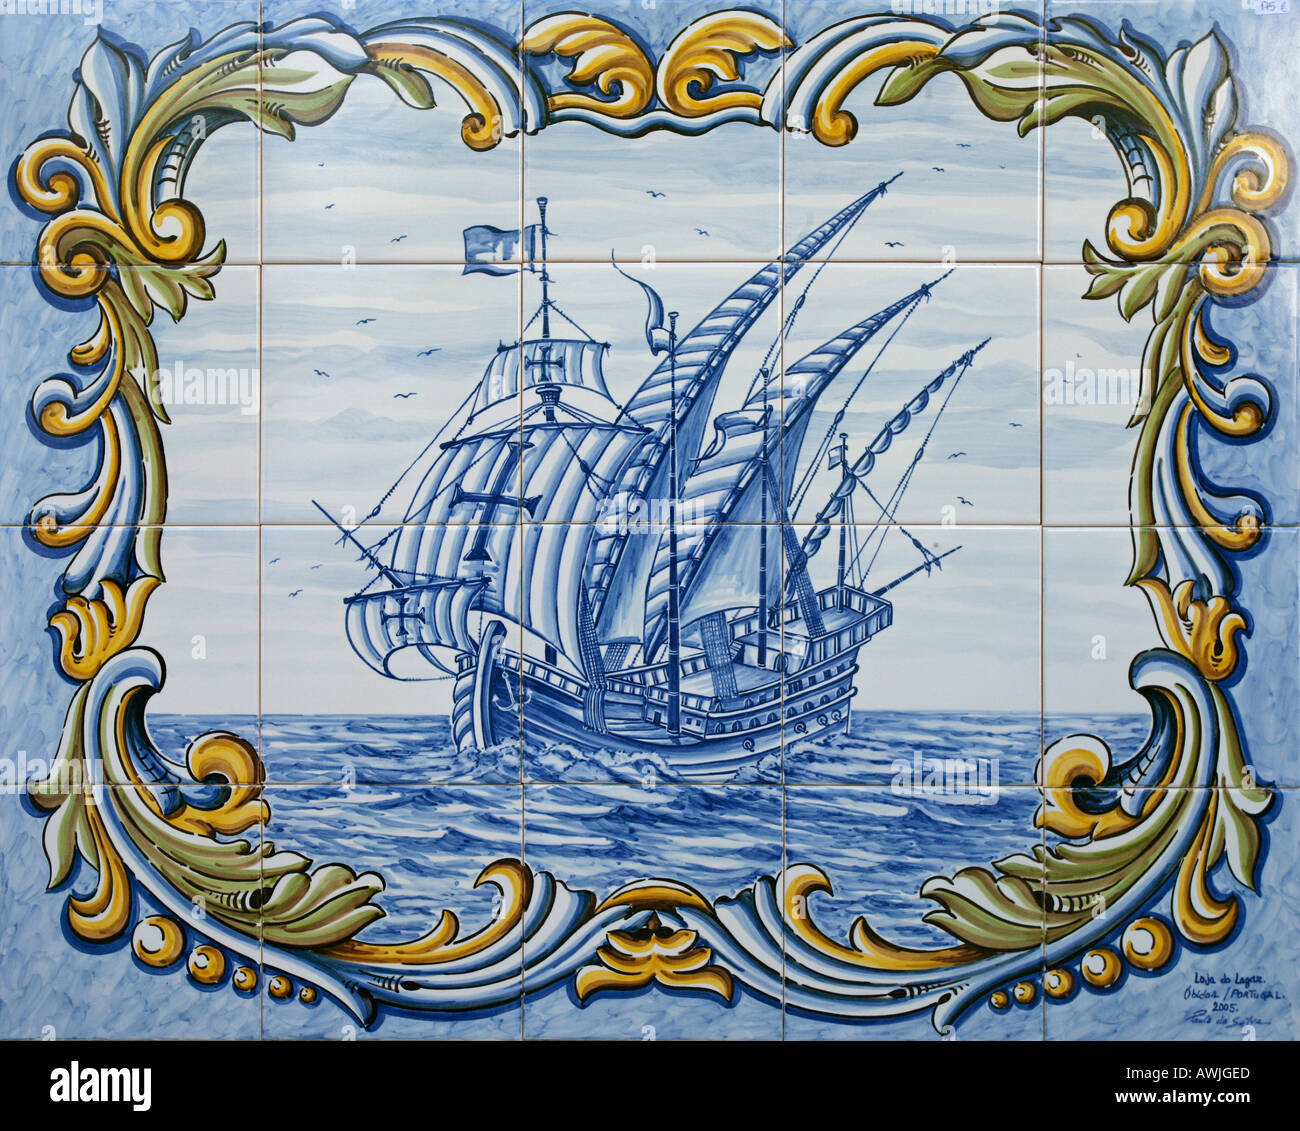 A tile painting of an old sailing ship found in Óbidos Portugal - Stock Image